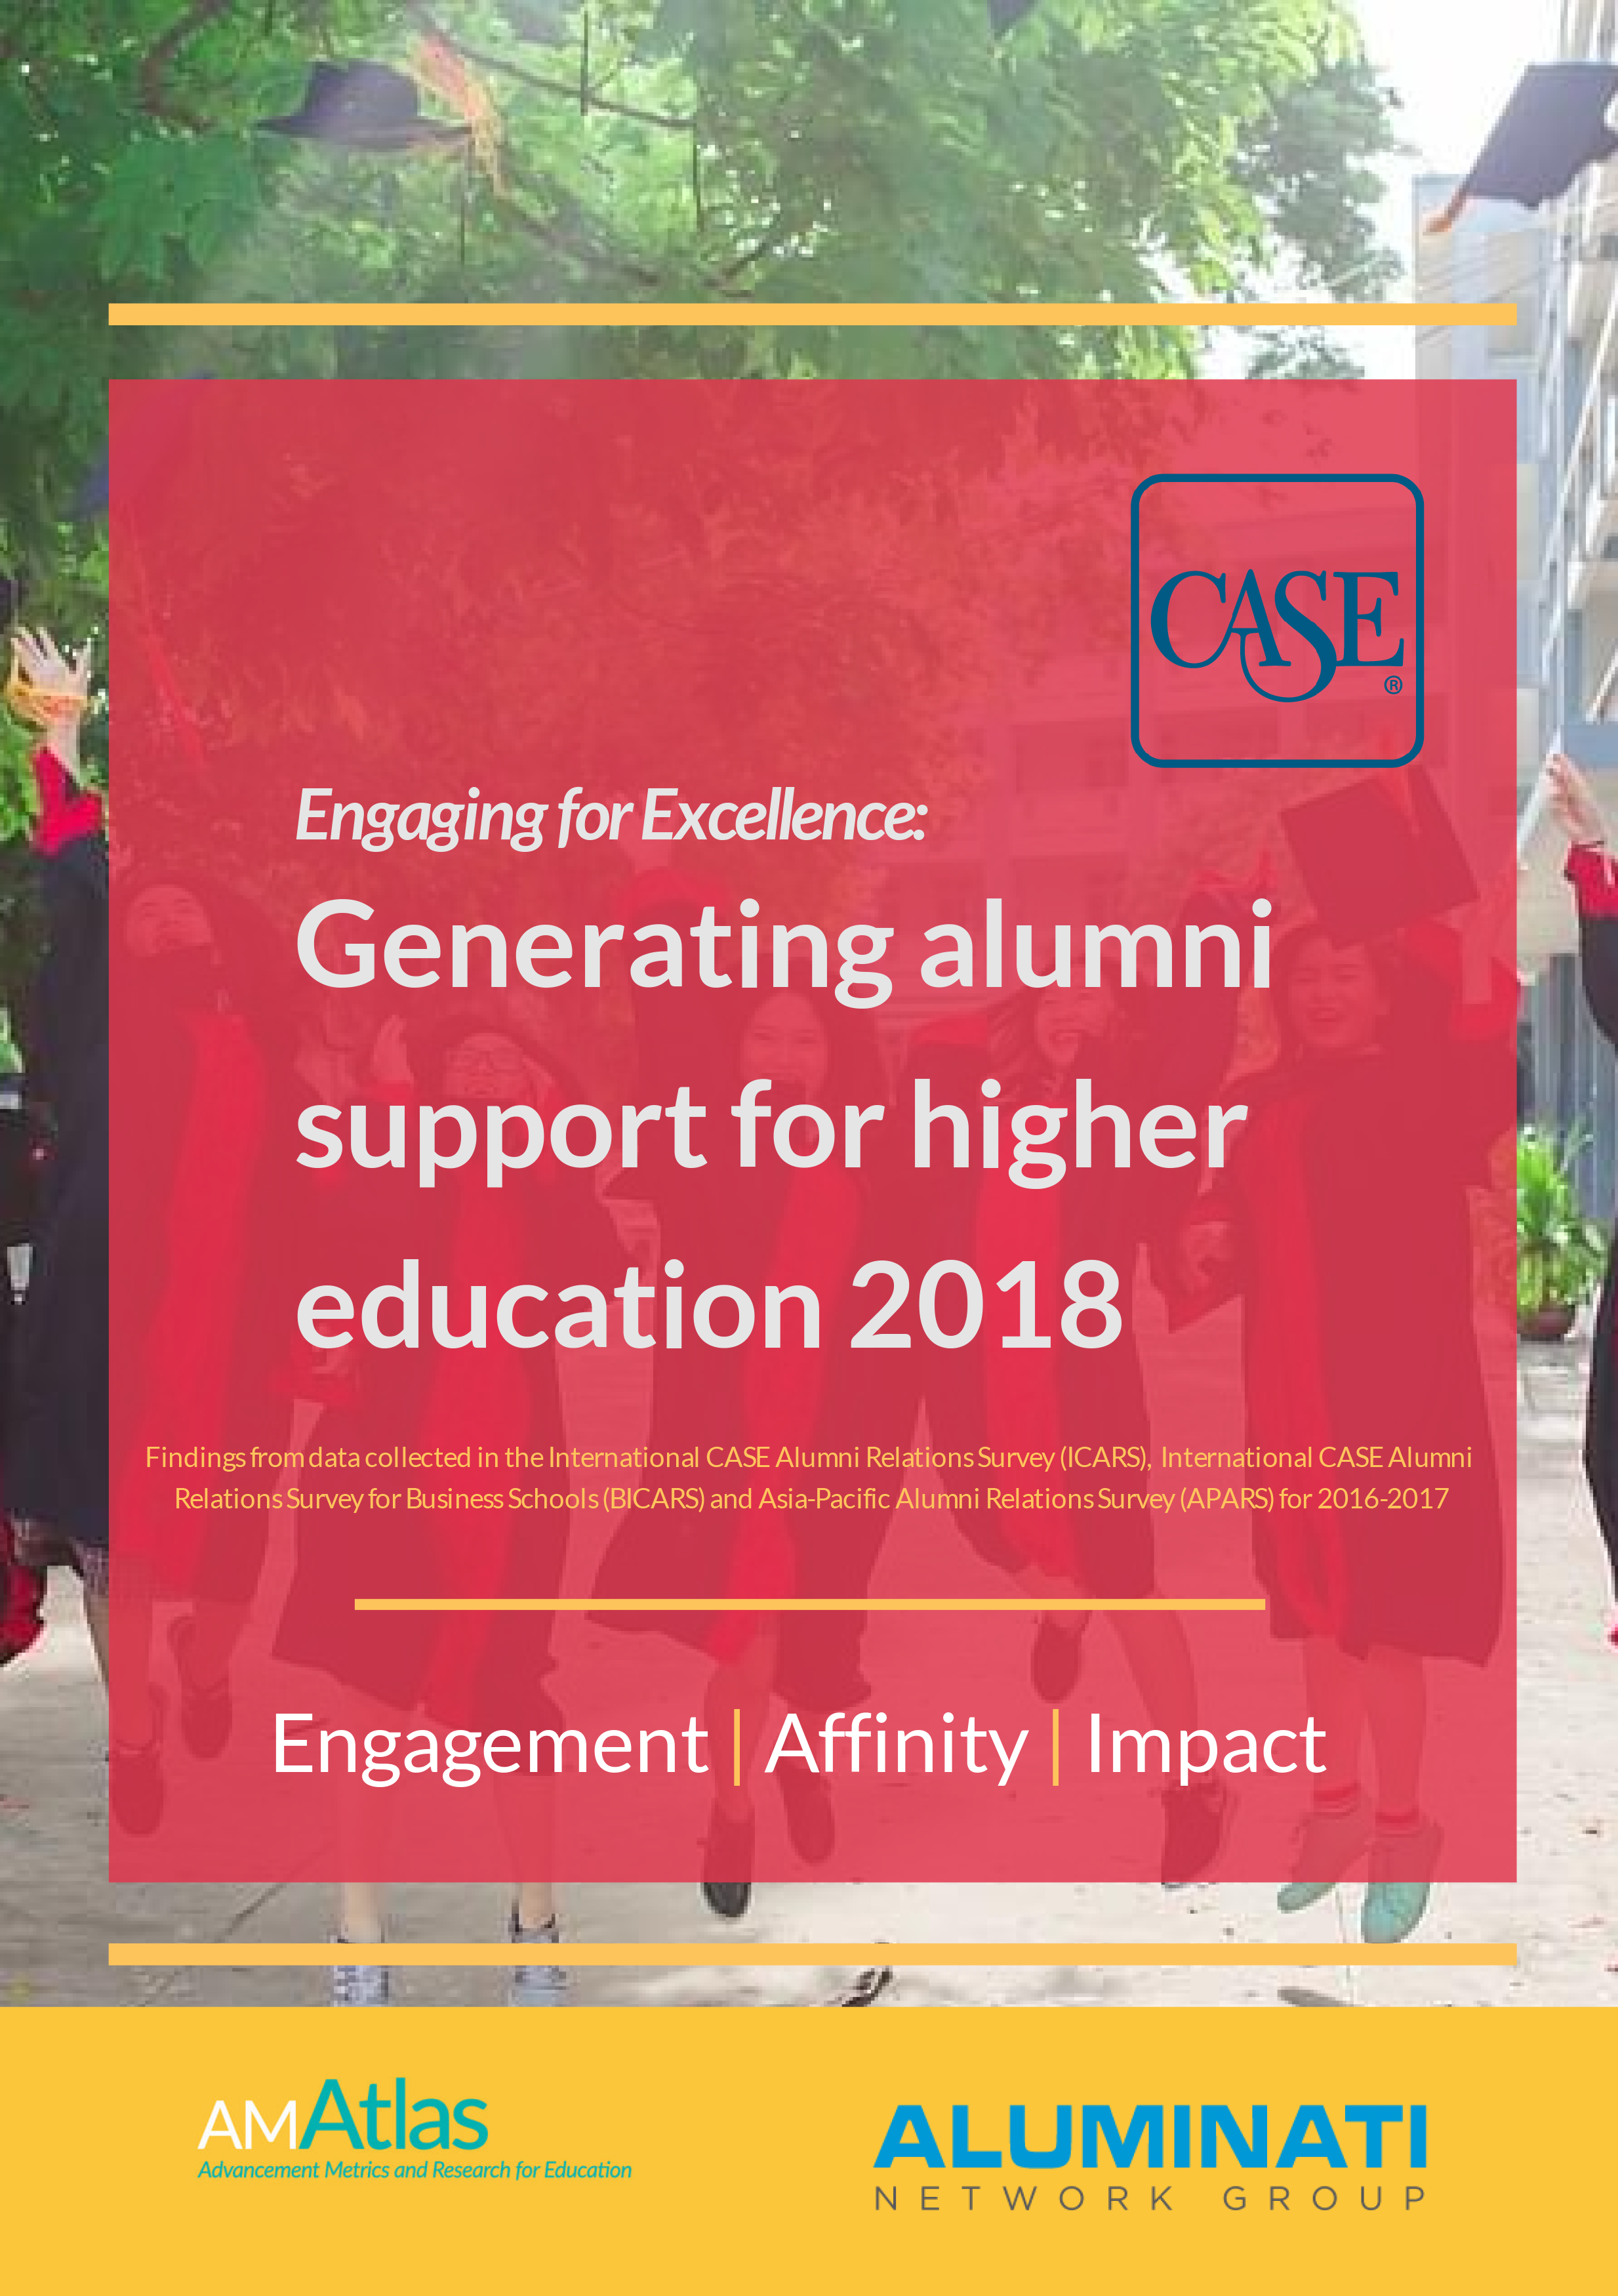 Engaging for Excellence: Generating alumni support for higher education 2018